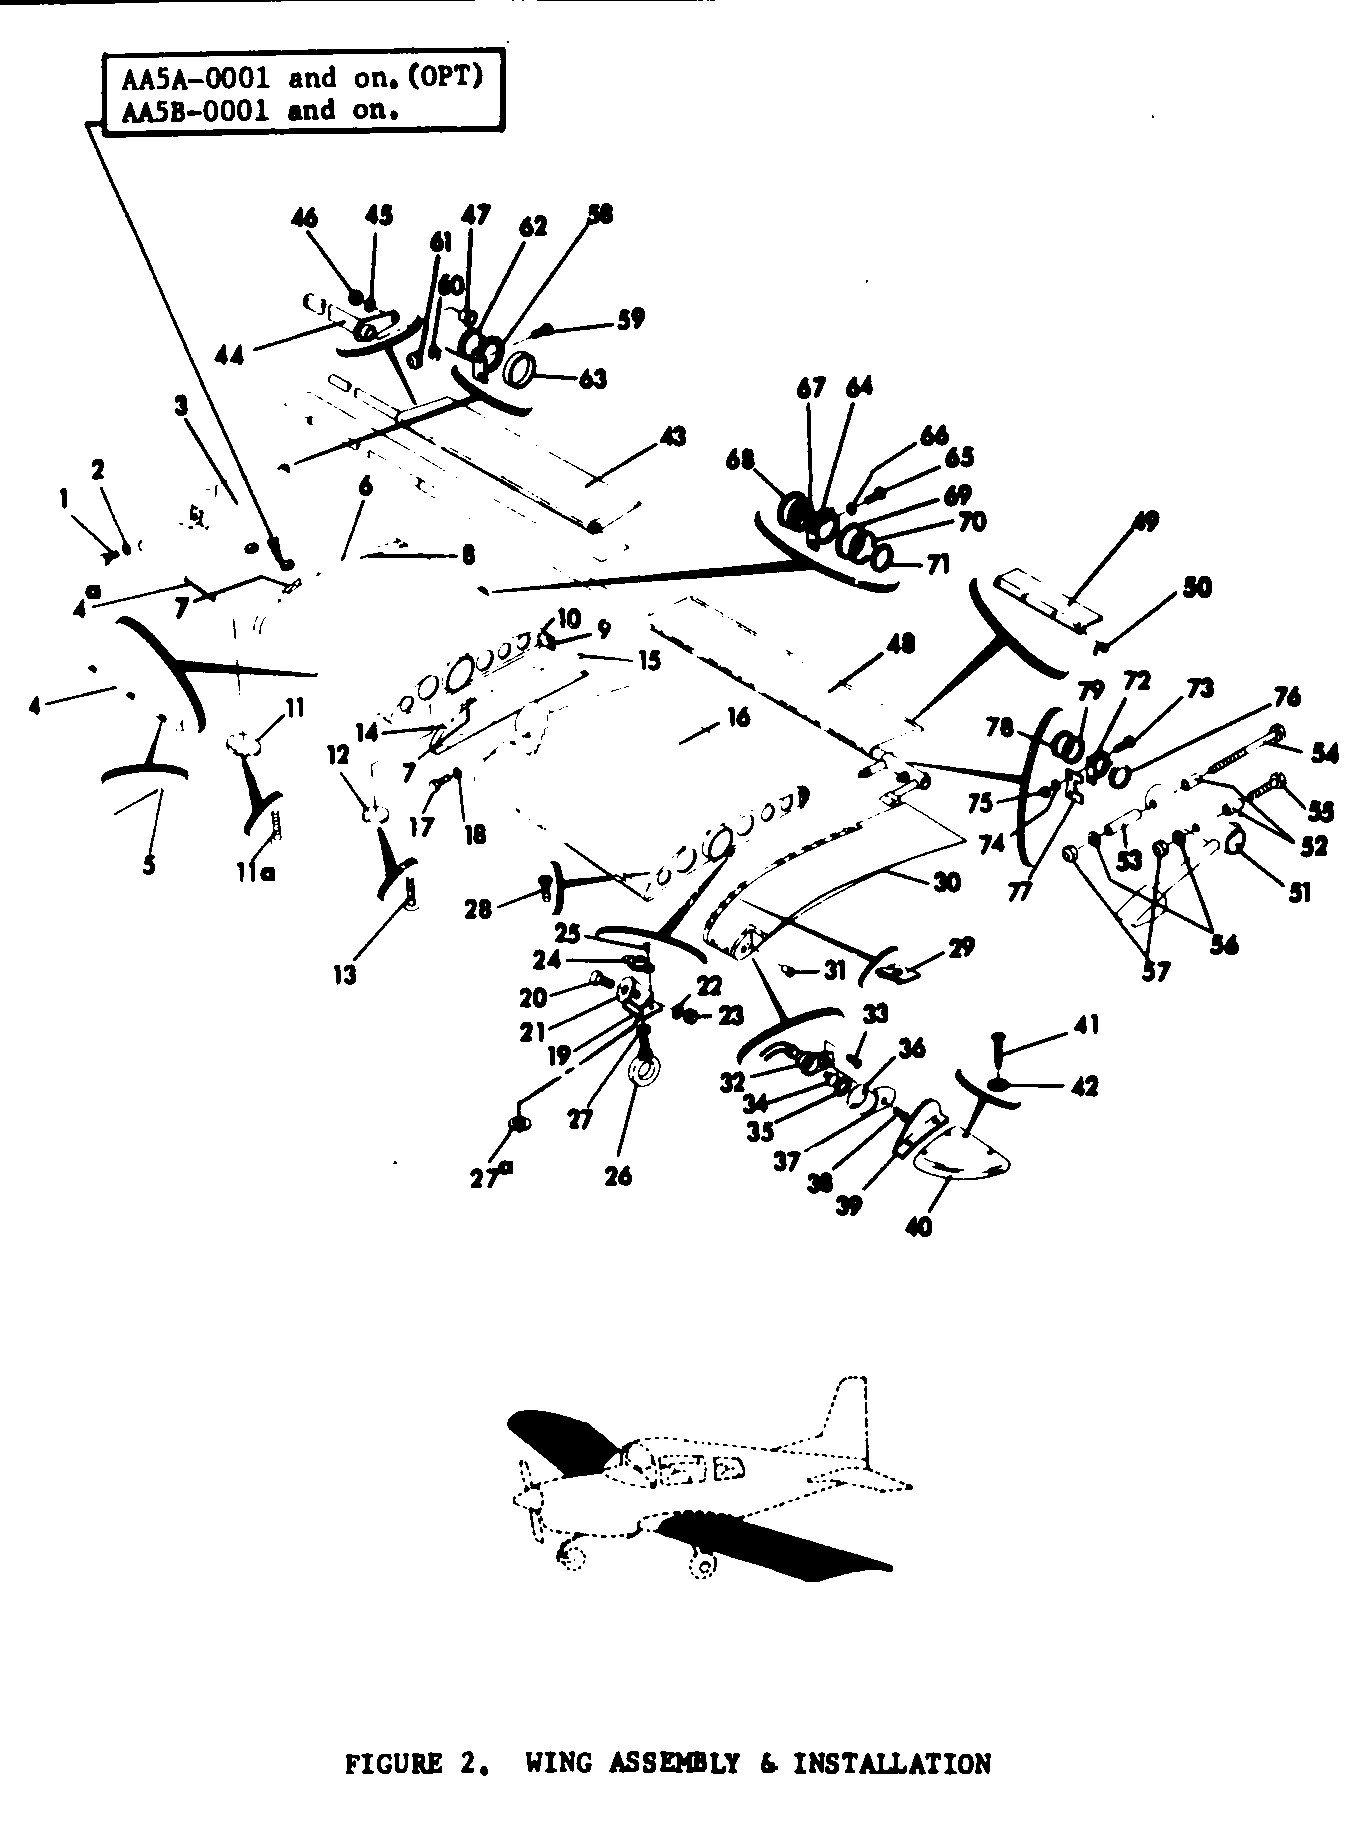 Parts Diagram Figure 2 AA5A OPT AA5B 0001 and on Wing